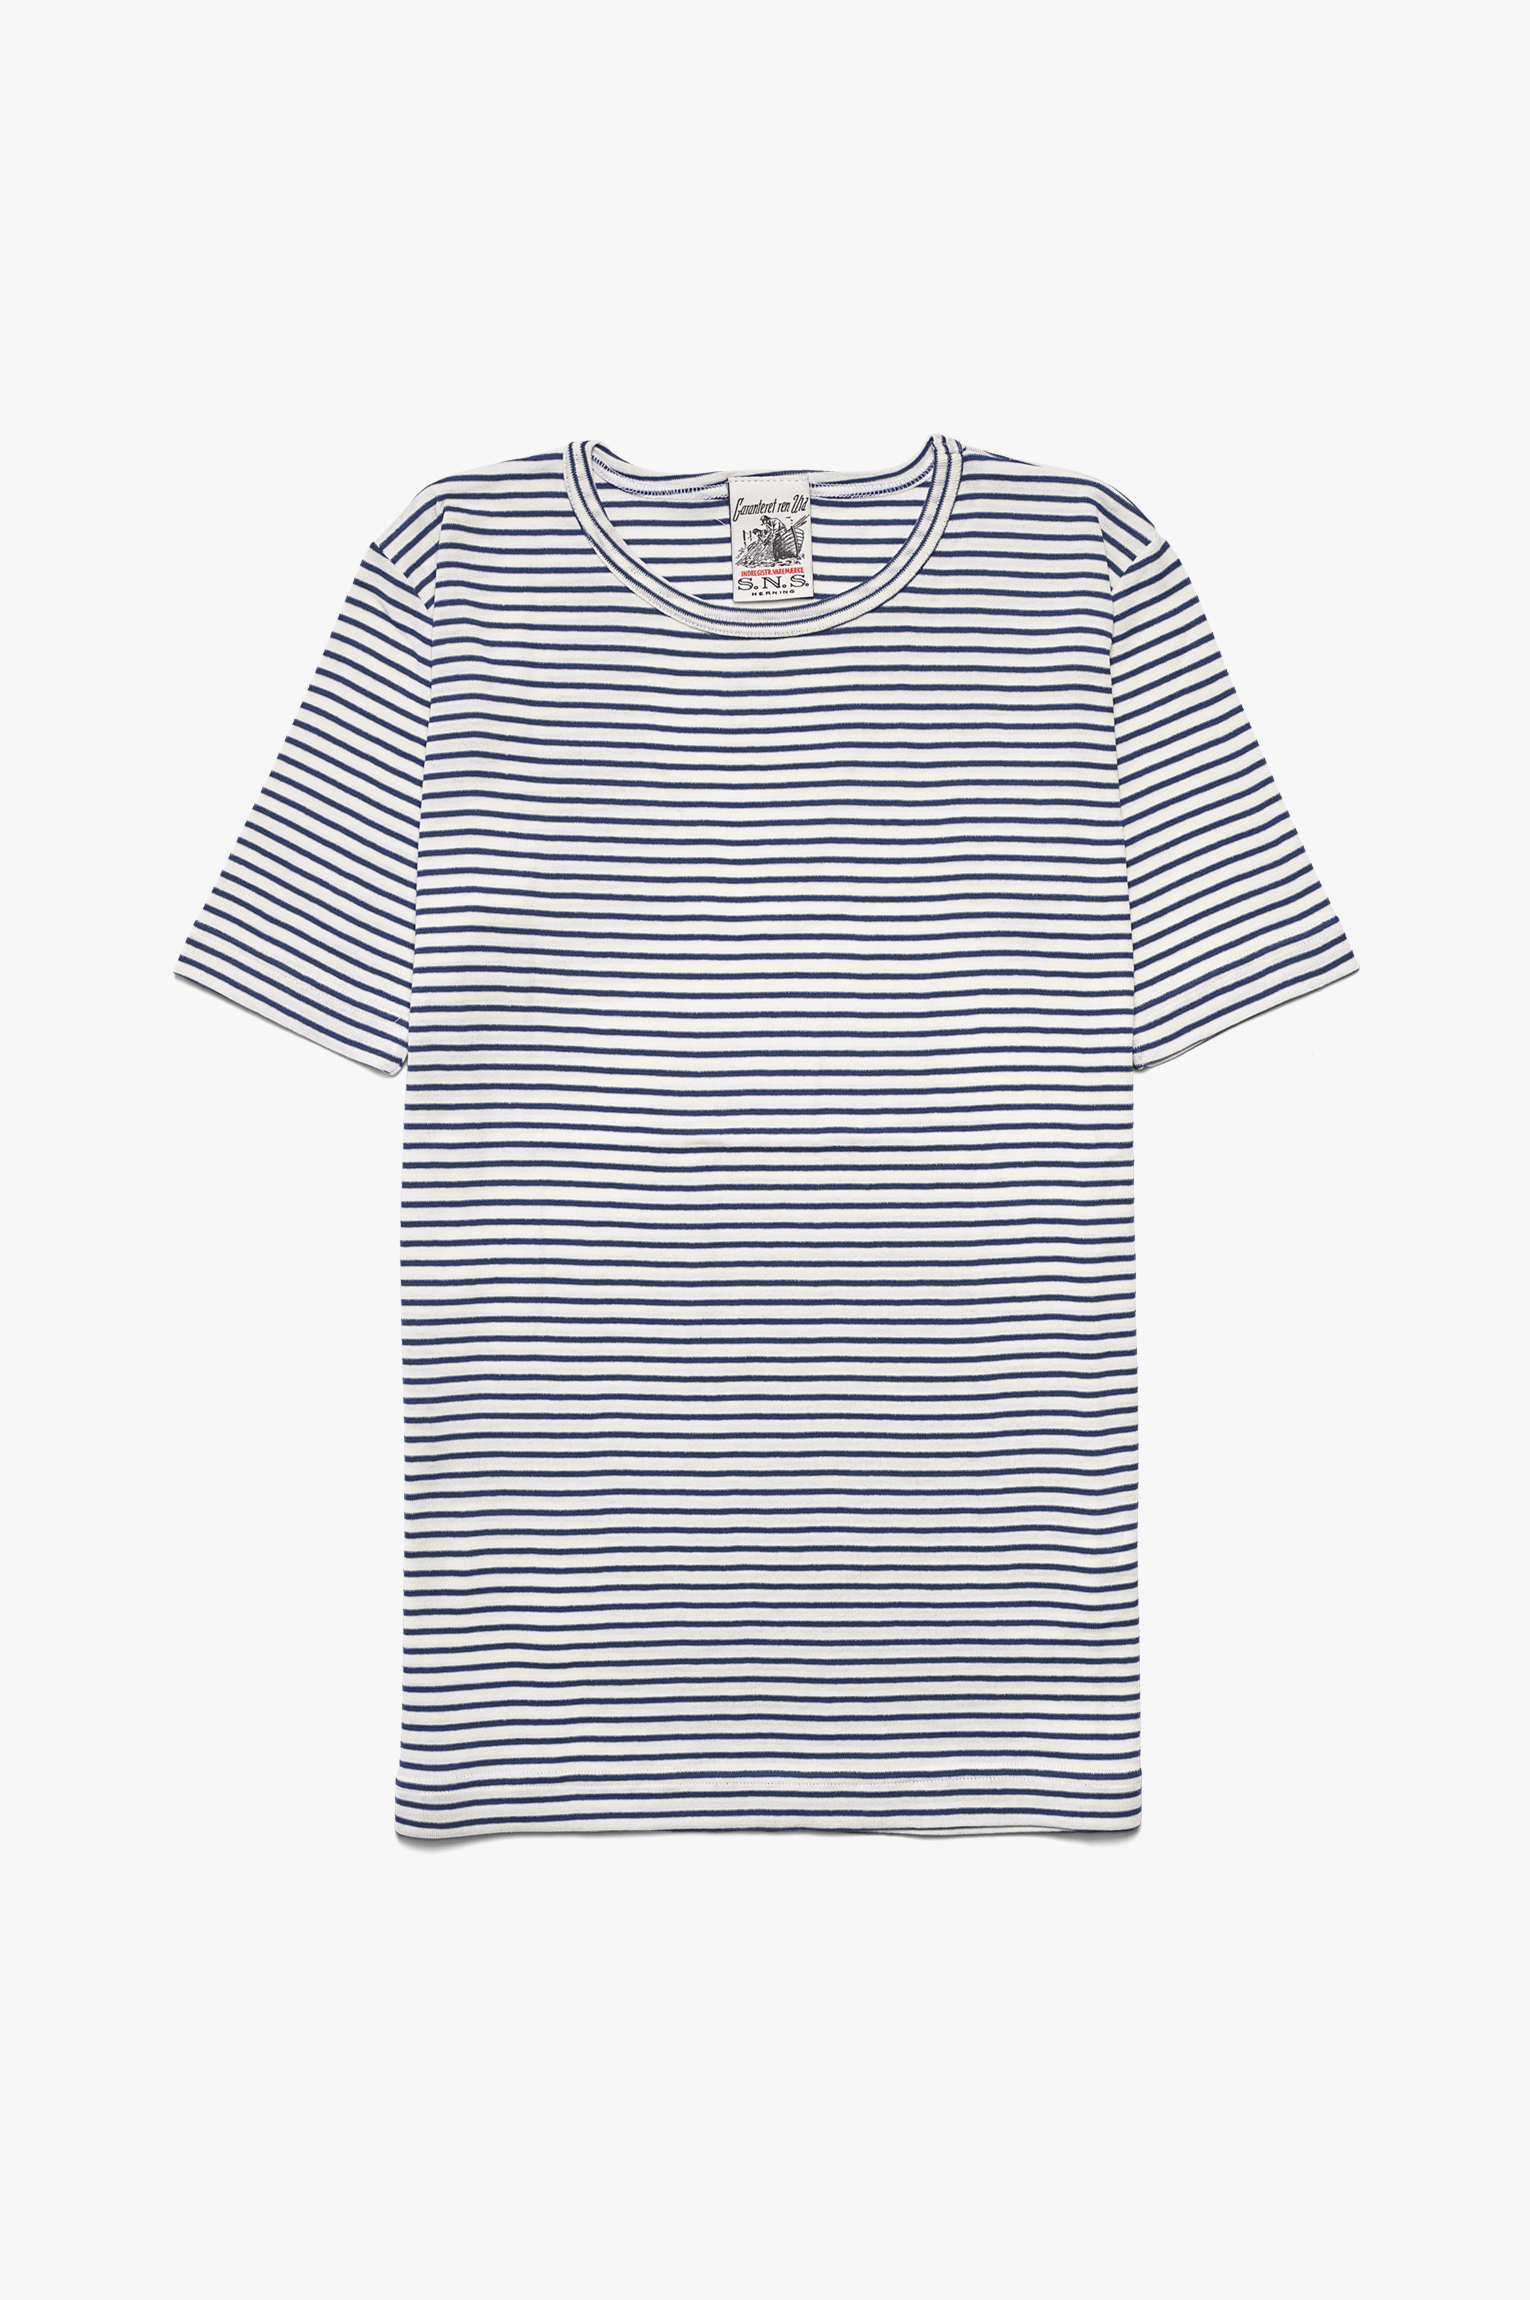 Lemma T-Shirt White/Blue Stripes